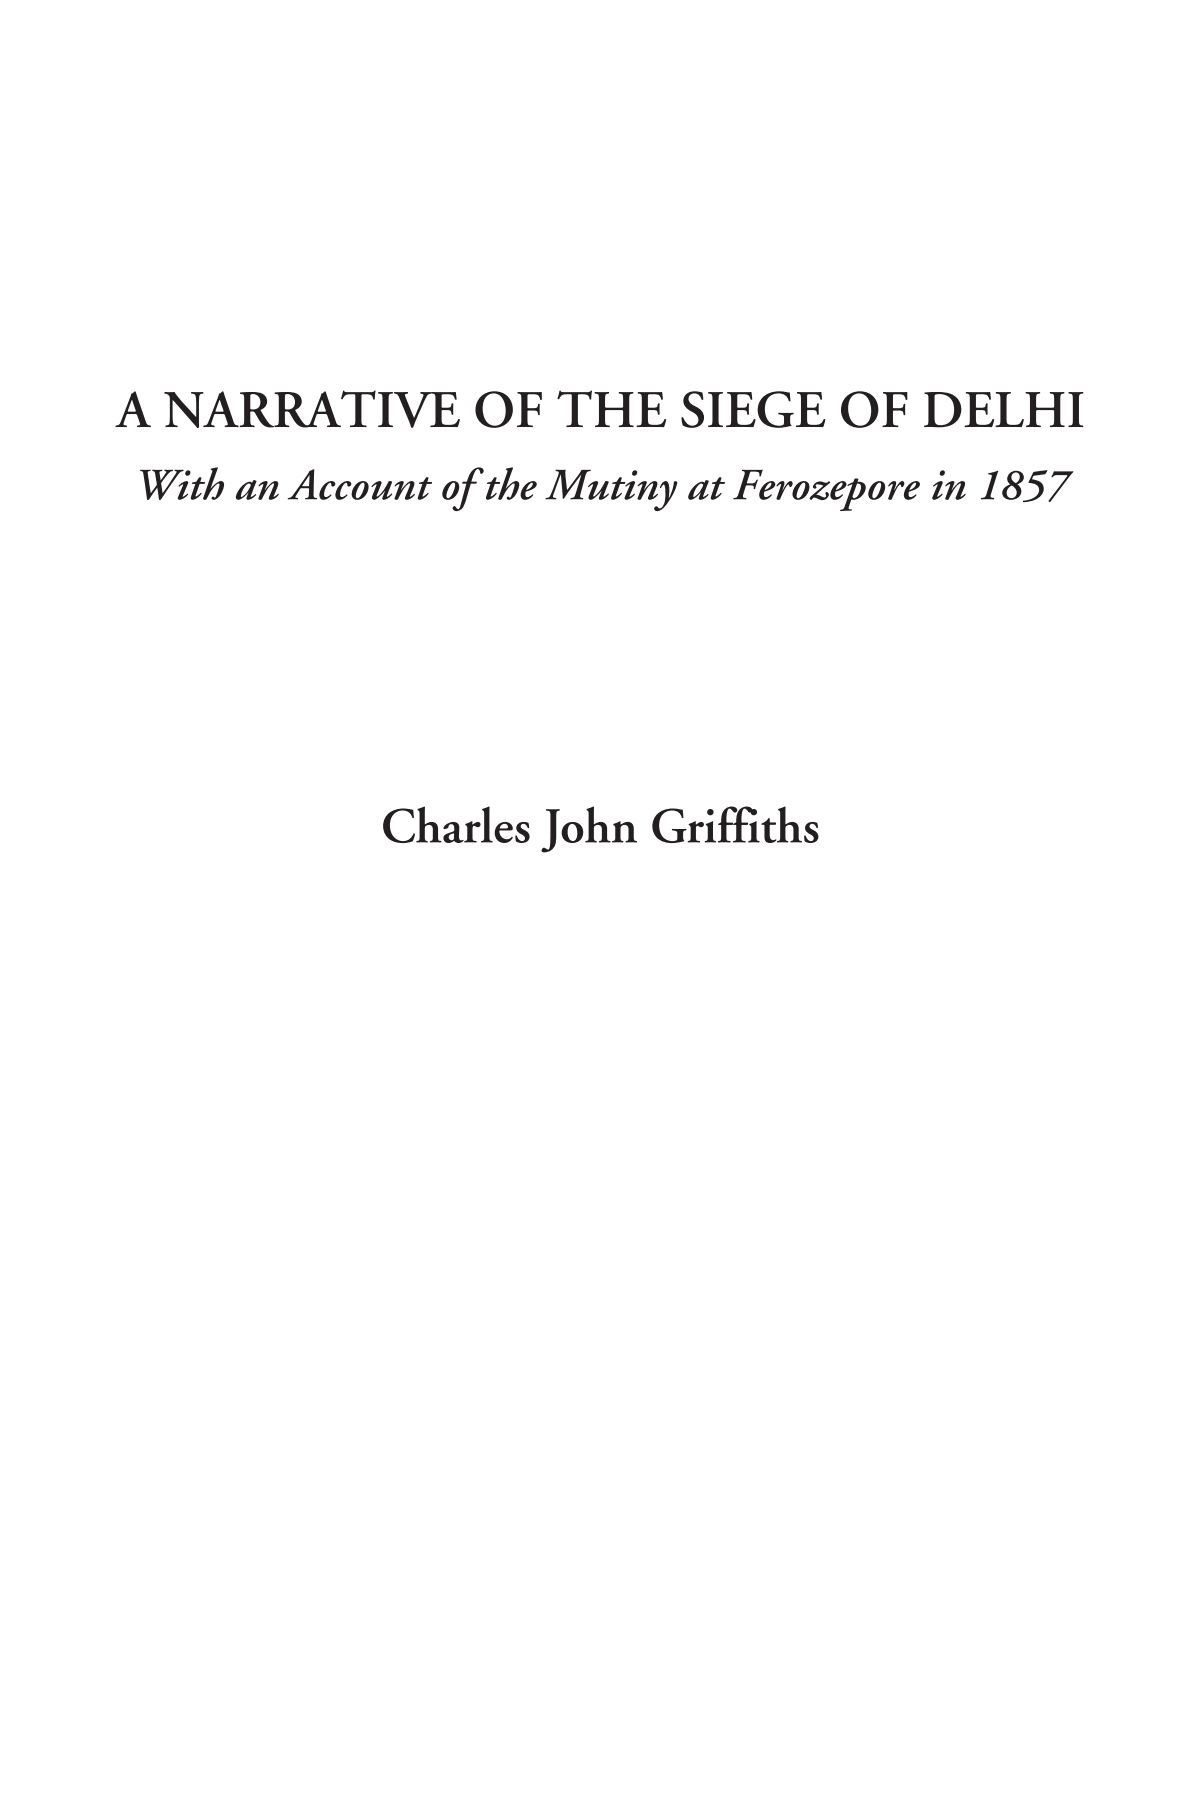 Download A Narrative of the Siege of Delhi (With an Account of the Mutiny at Ferozepore in 1857) ebook